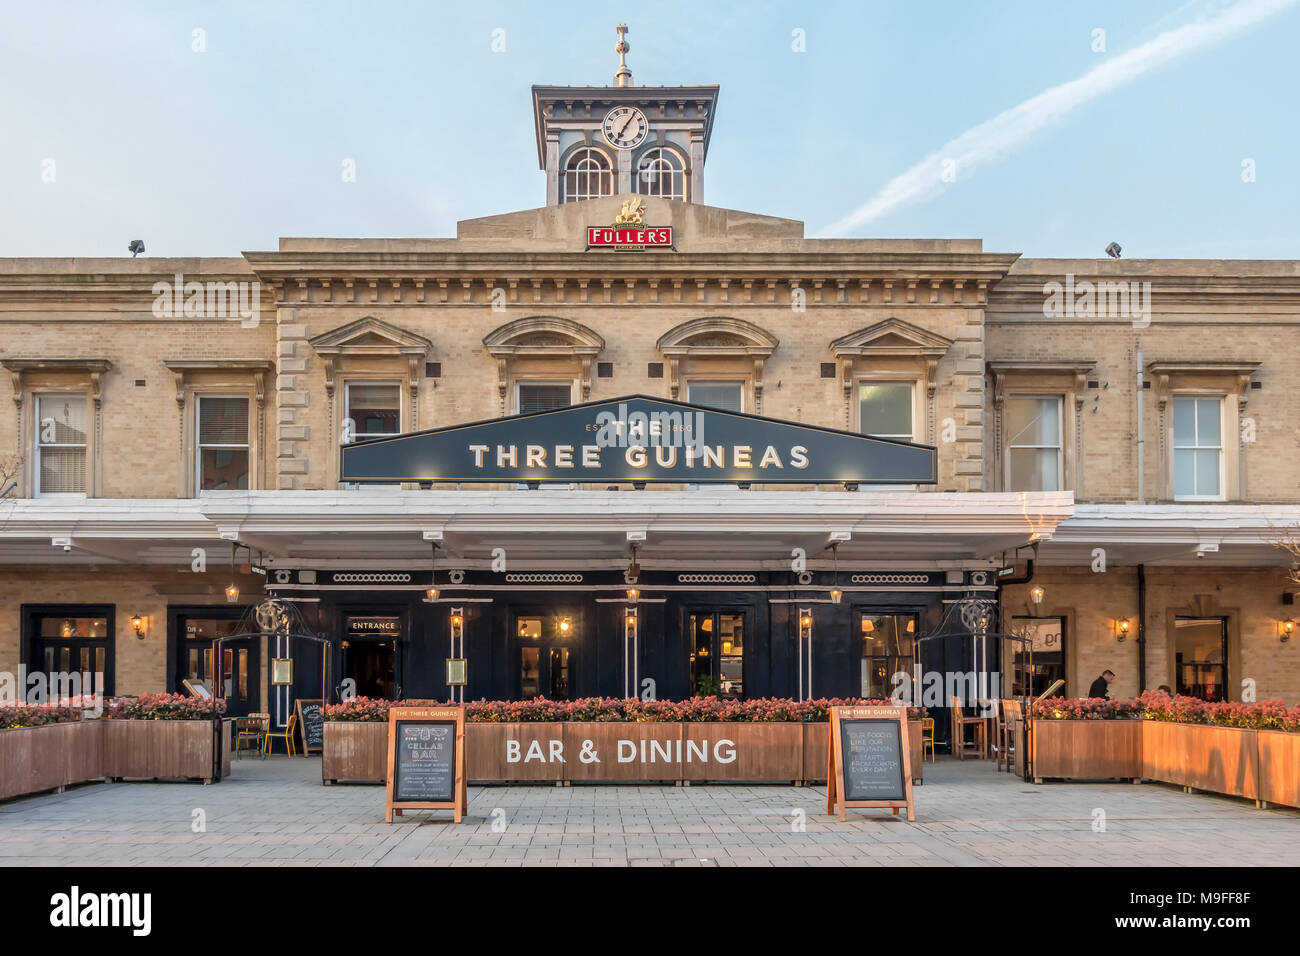 The Three Guineas pub and restaurant is built into the side of Reading Railway Station in Reading, UK. - Stock Image